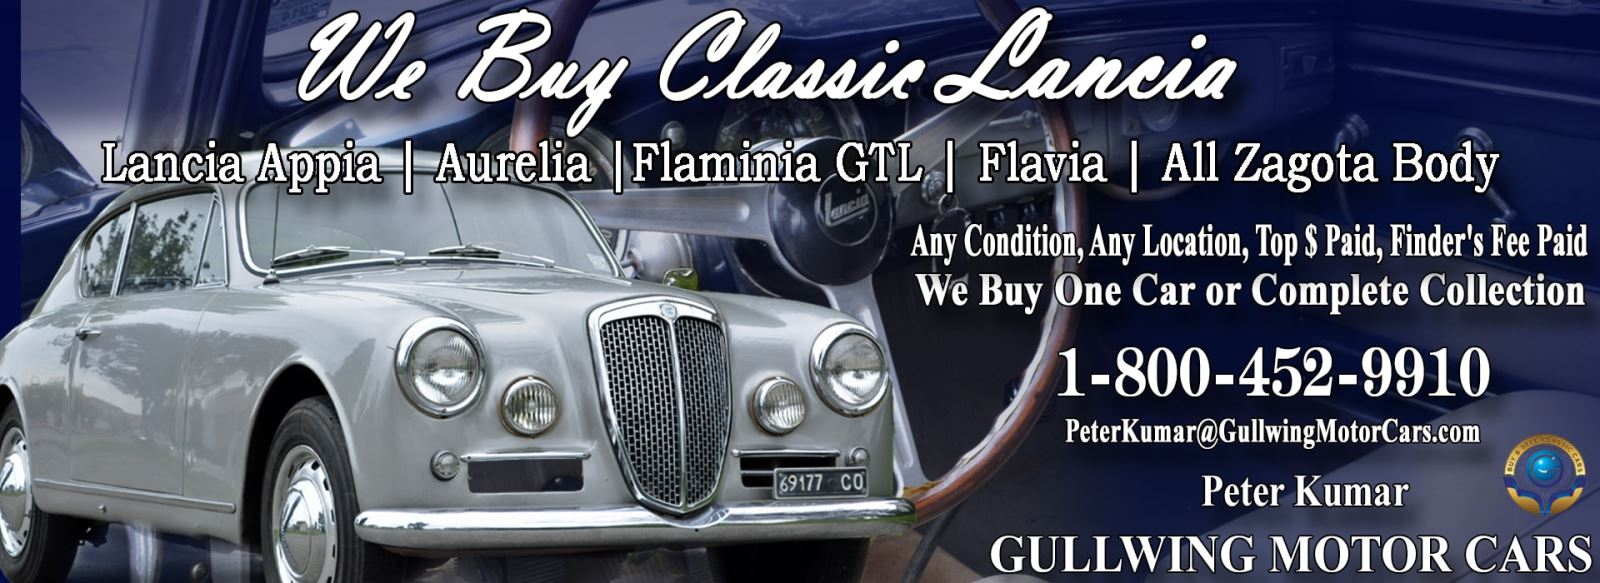 Classic Lancia for sale, we buy vintage Lancia. Call Peter Kumar. Gullwing Motor